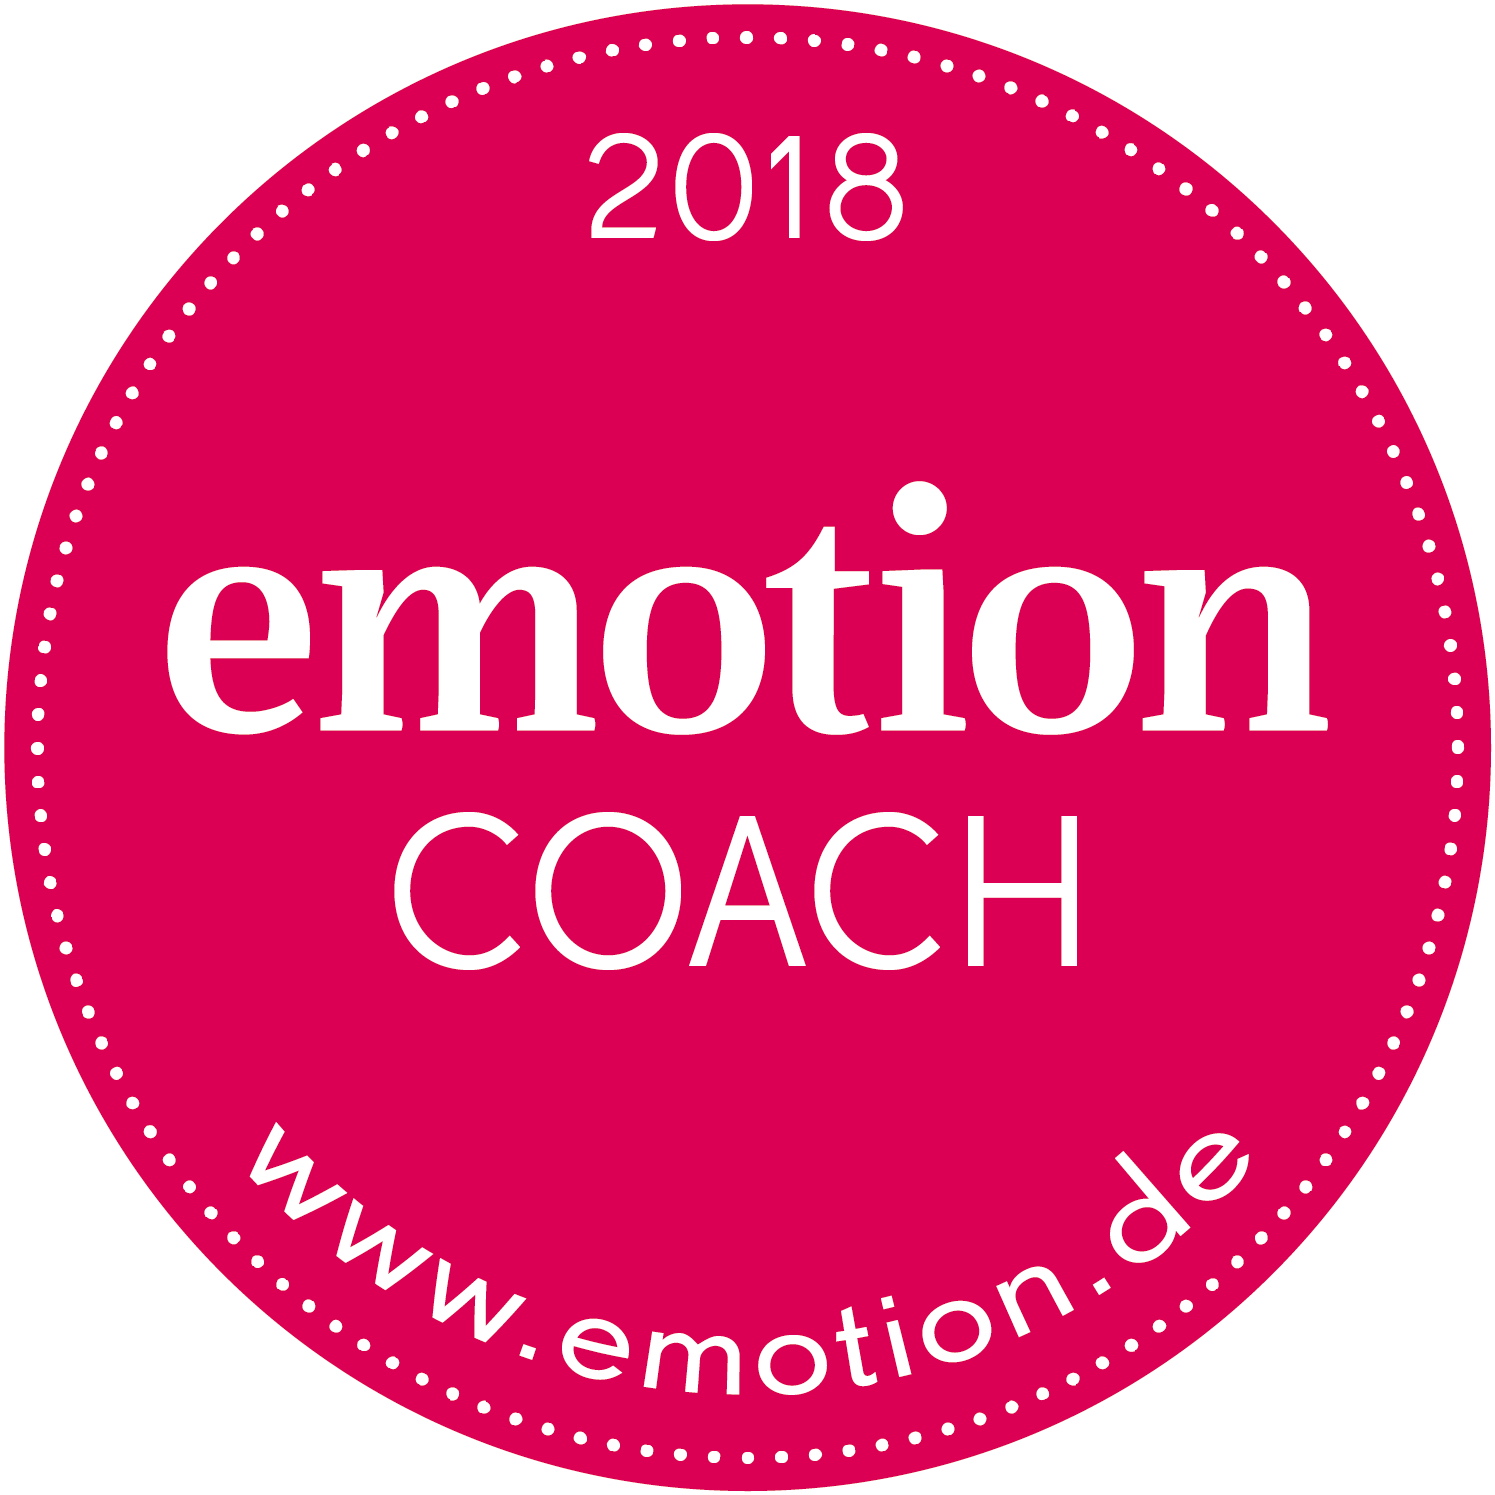 EMOTION, Magazin, Verlag, Christin Prizelius